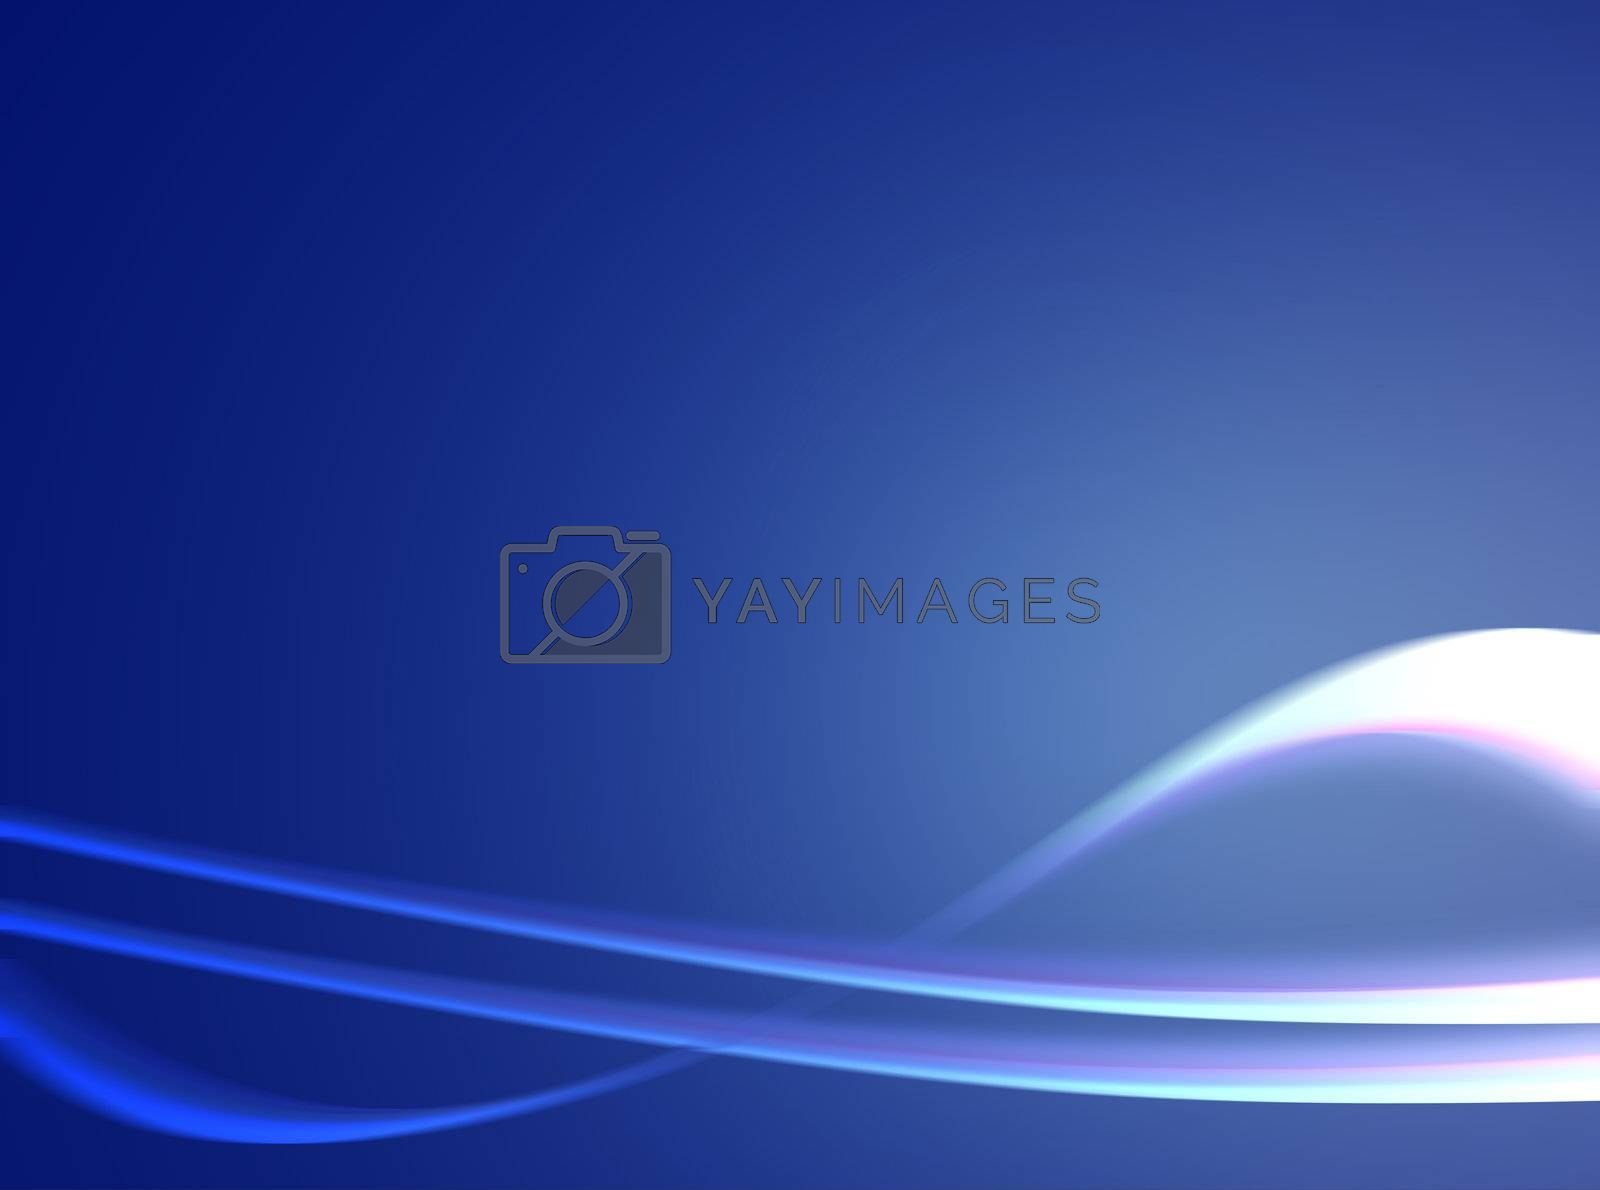 dynamic waves on blue background with light effect